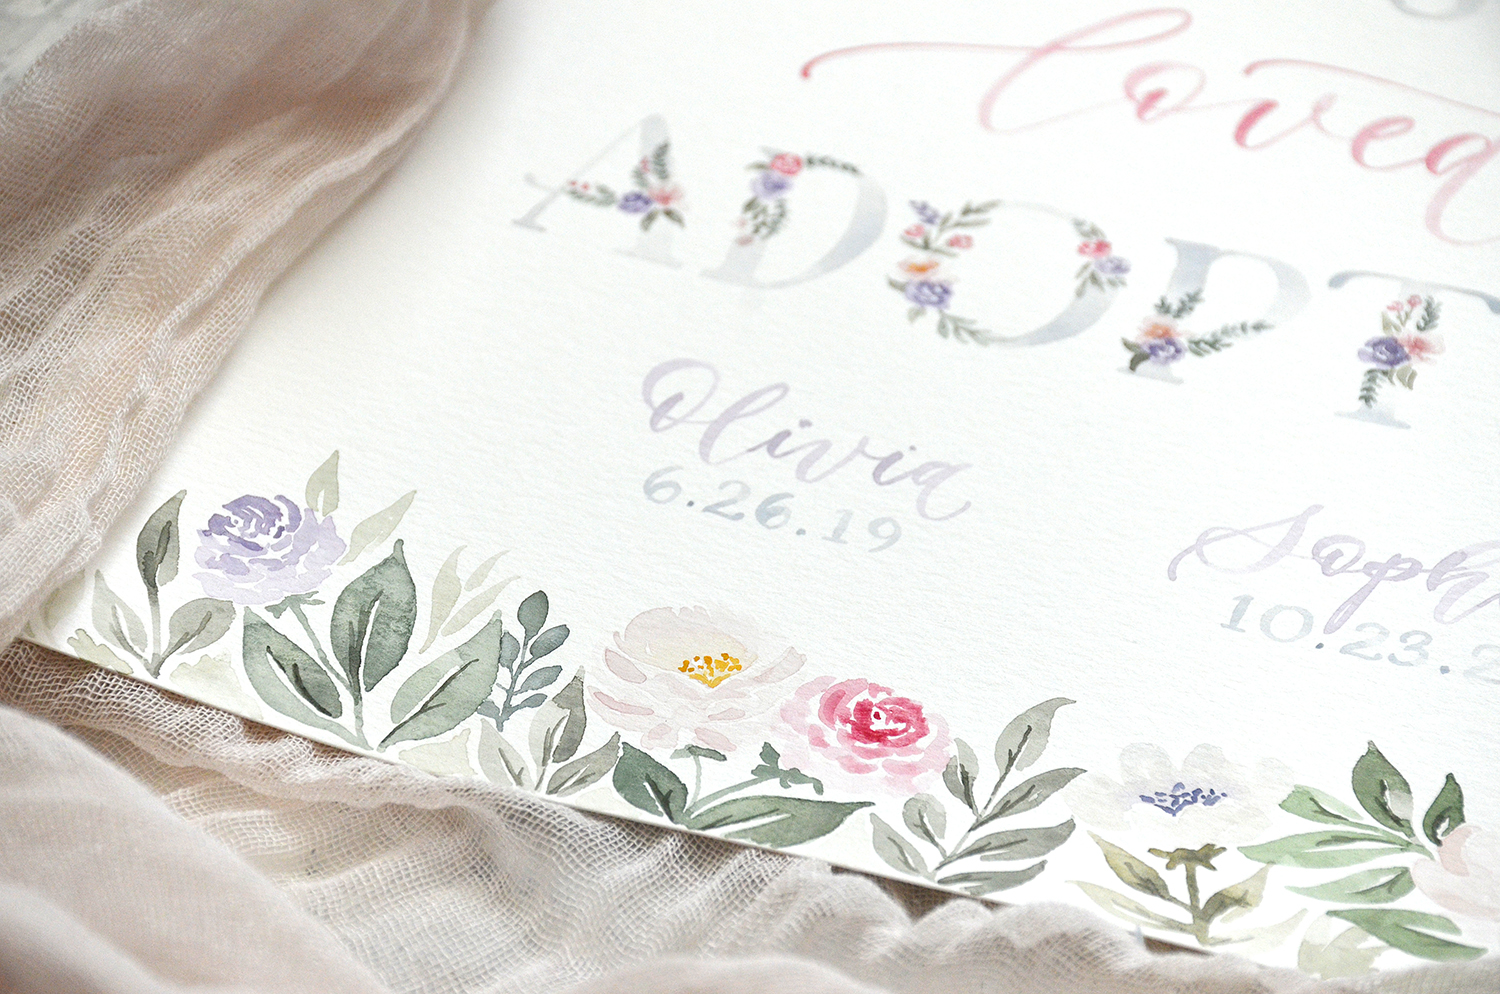 Sam Allen Creates – Wanted Chosen Loved Adopted Watercolor Floral Adoption Poster with Child's Name and Date